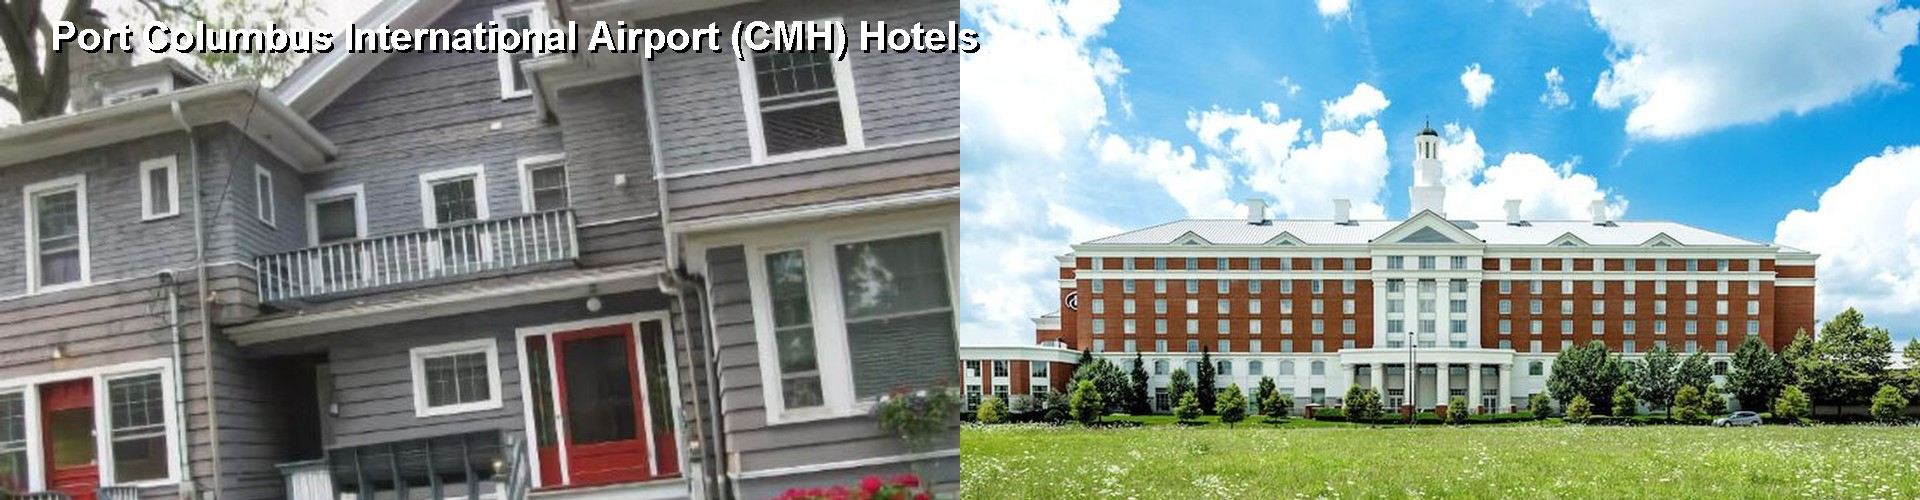 5 Best Hotels near Port Columbus International Airport (CMH)